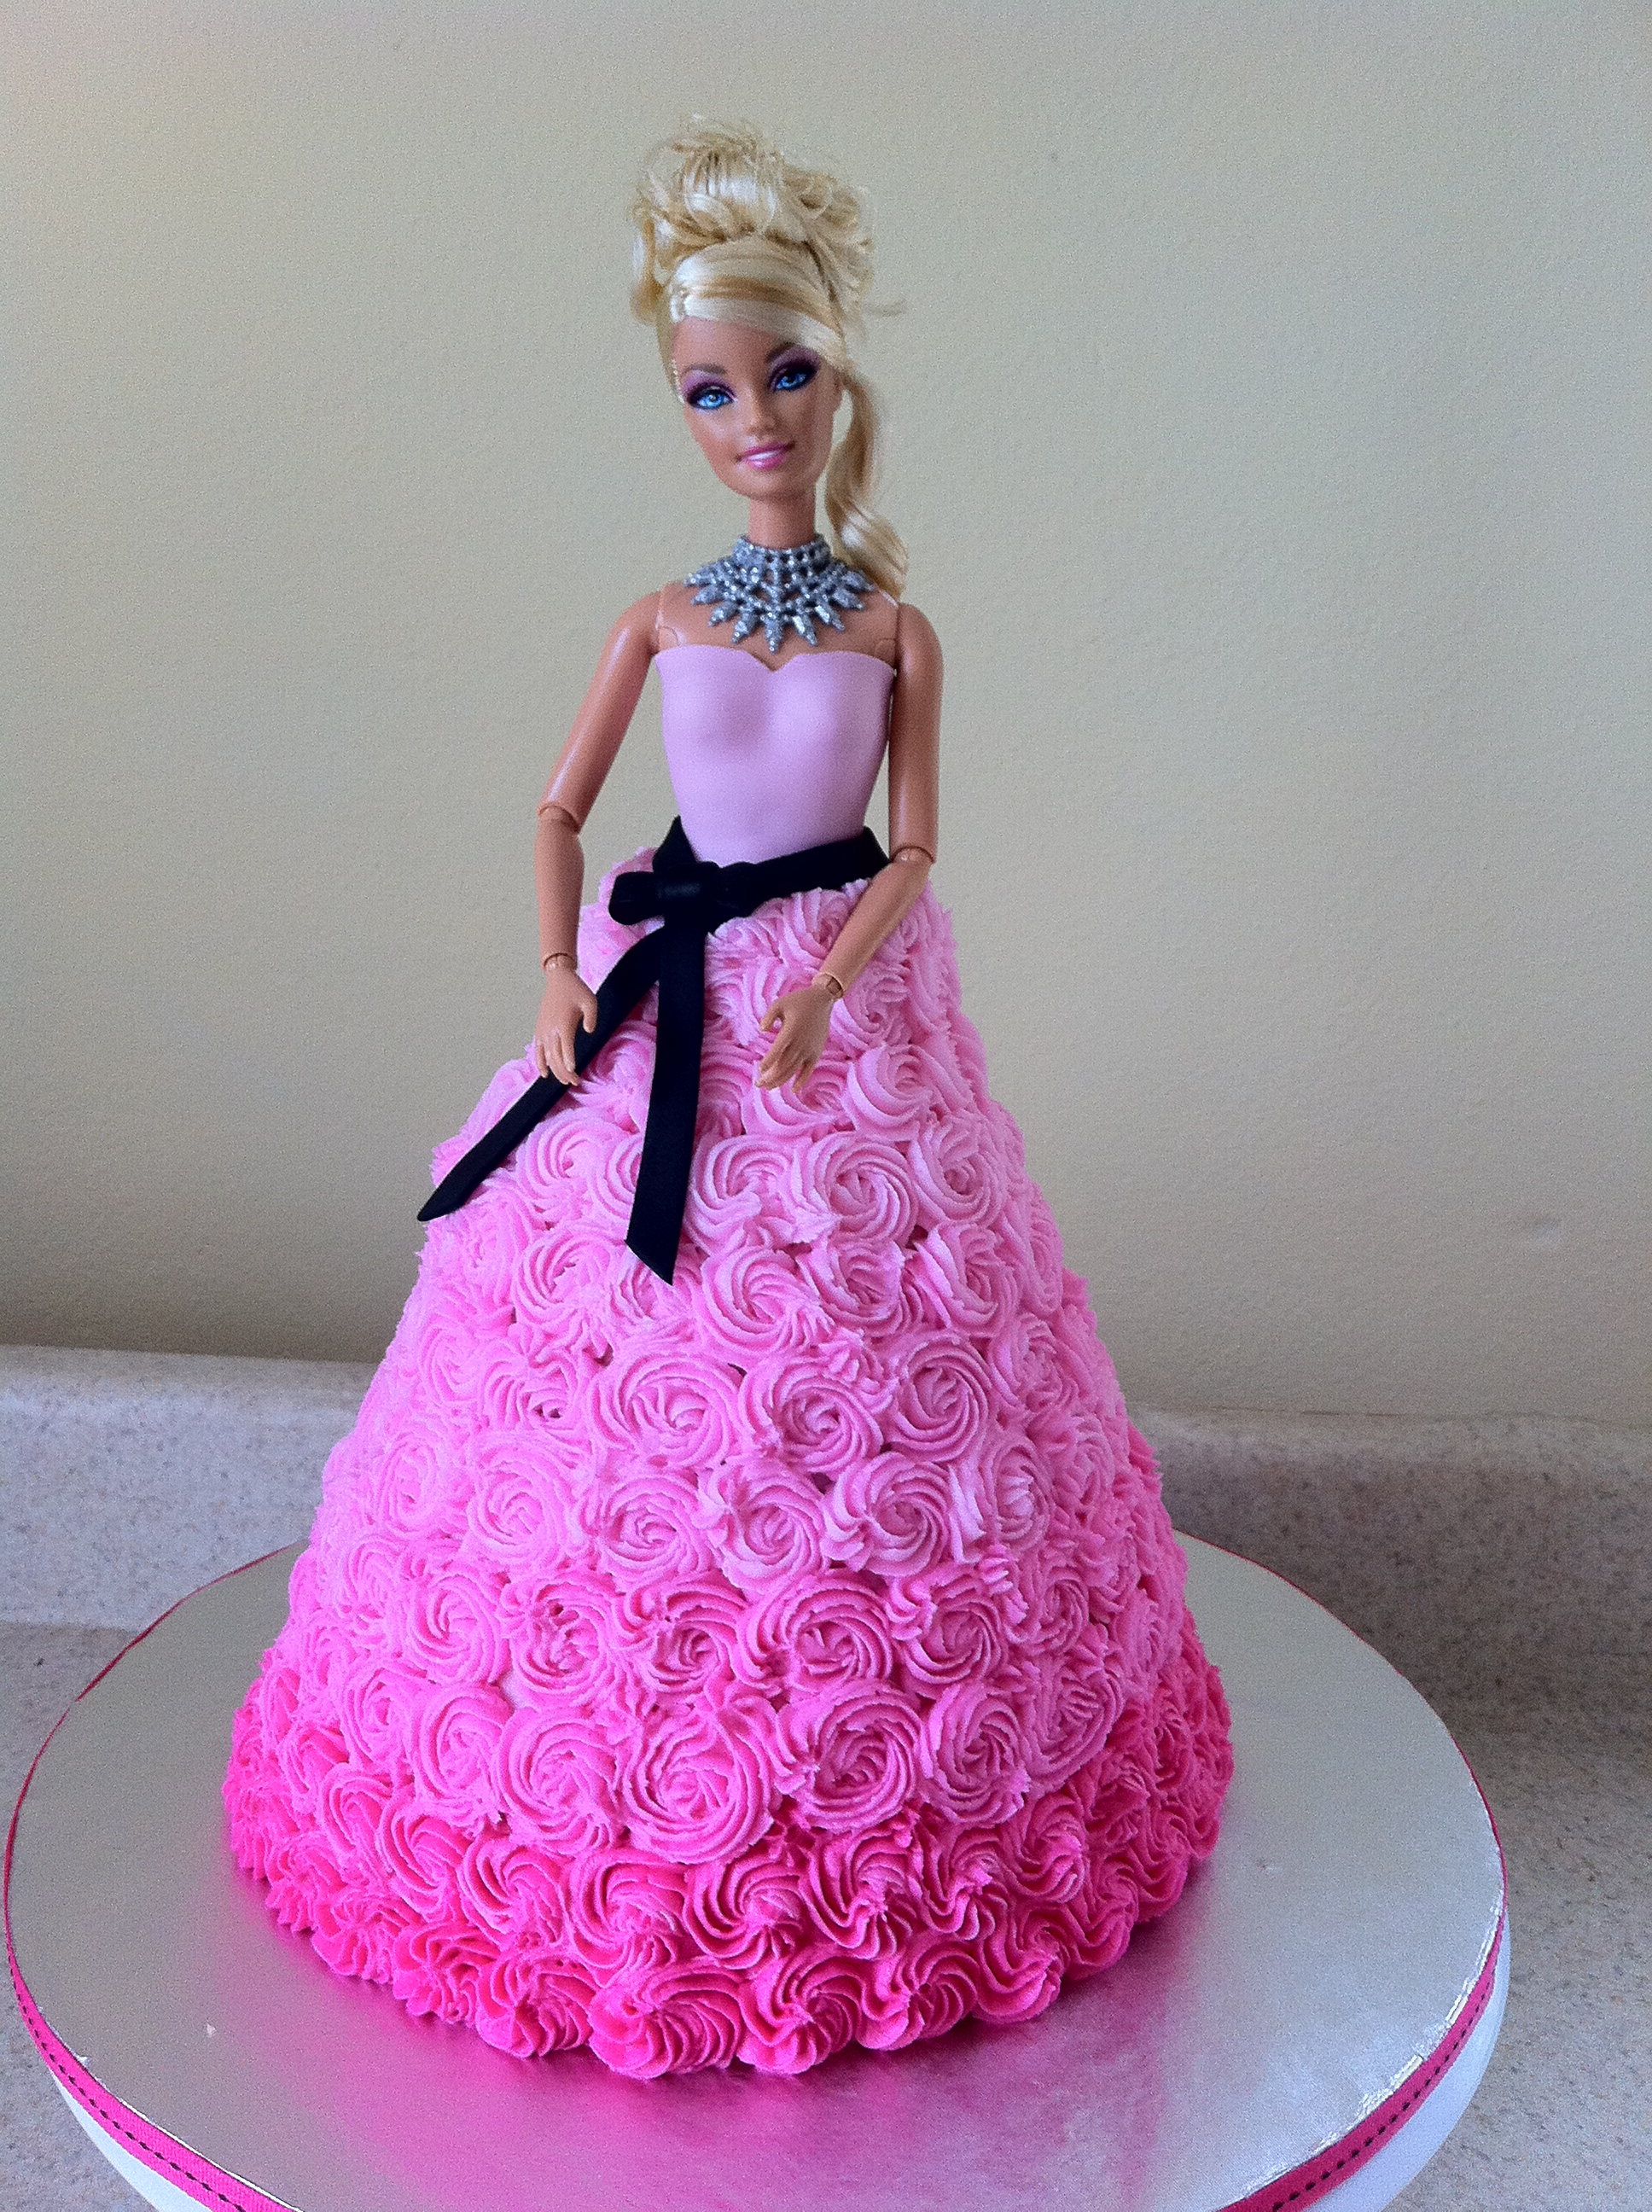 Images Of A Barbie Cake : Pink Swirls, Little Girls, Girls Birthday Cake, Birthday ...